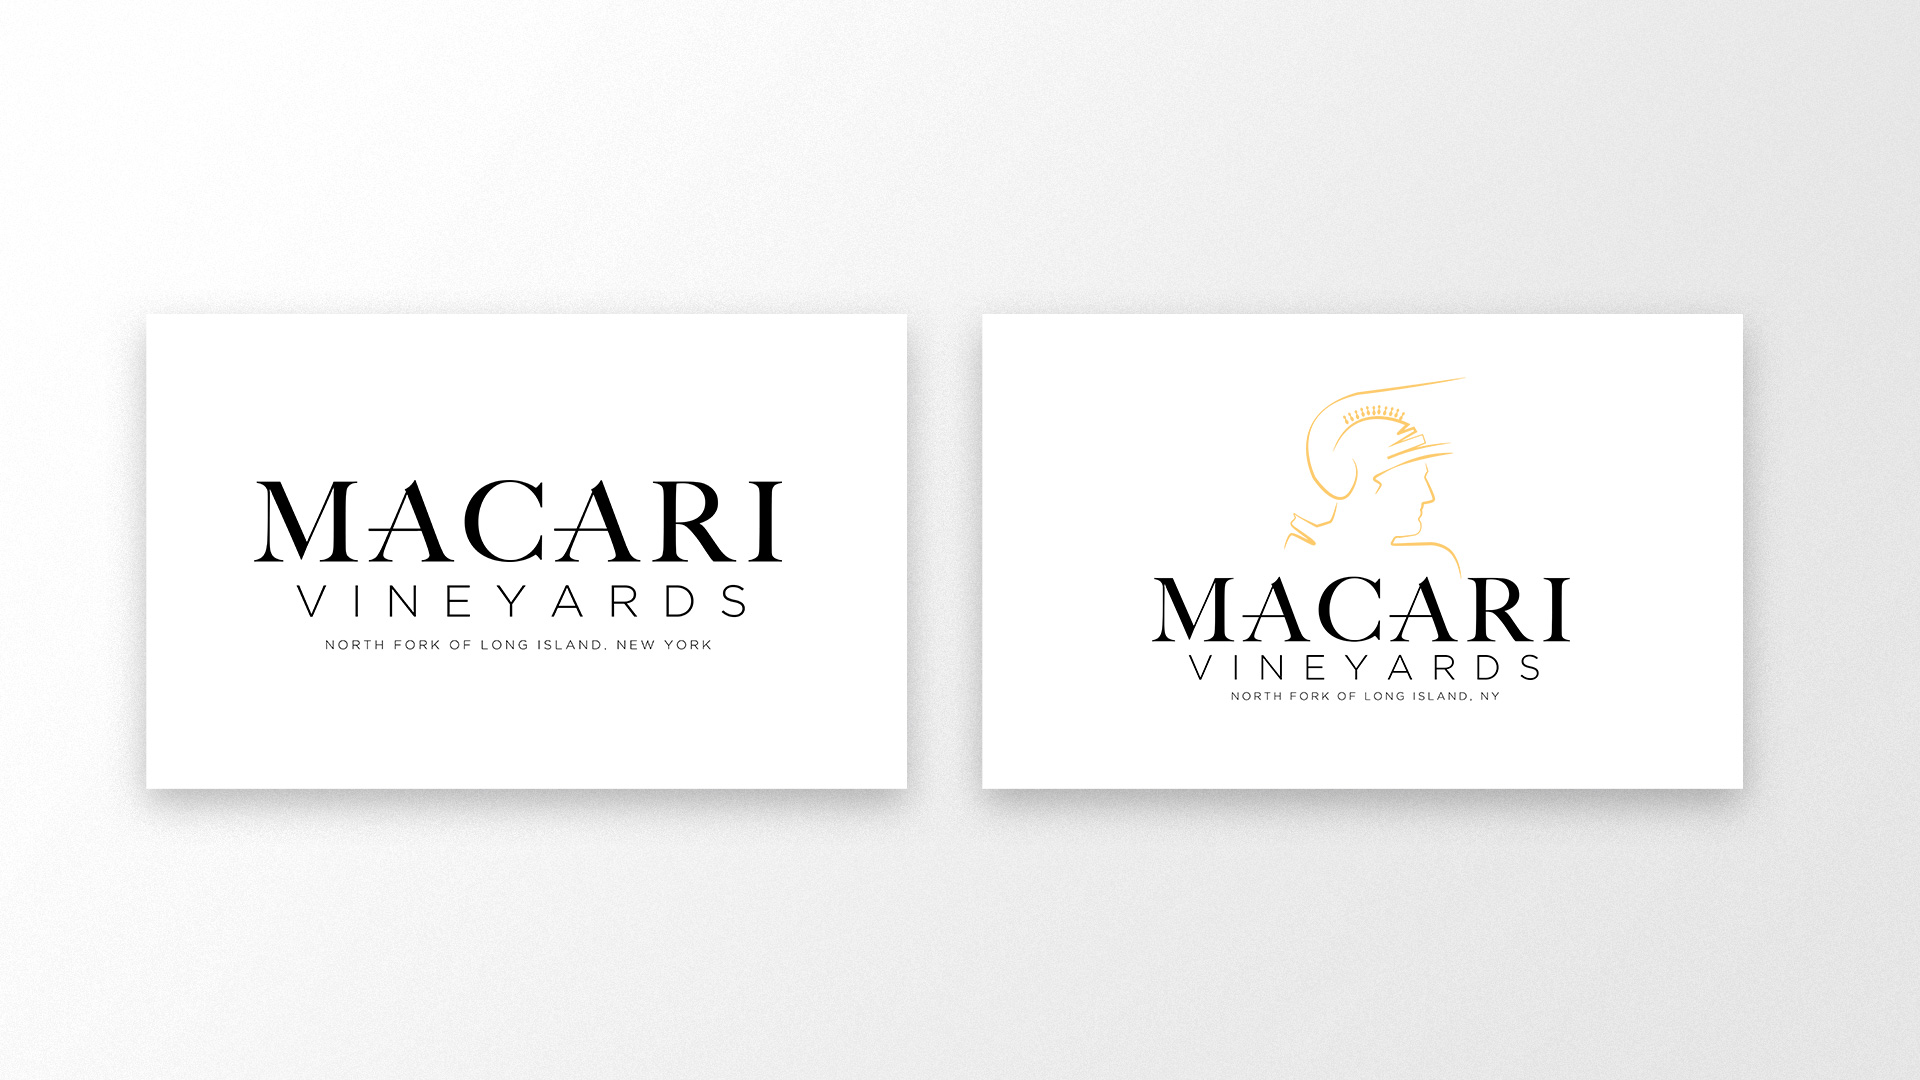 Macari Vineyards - Logos